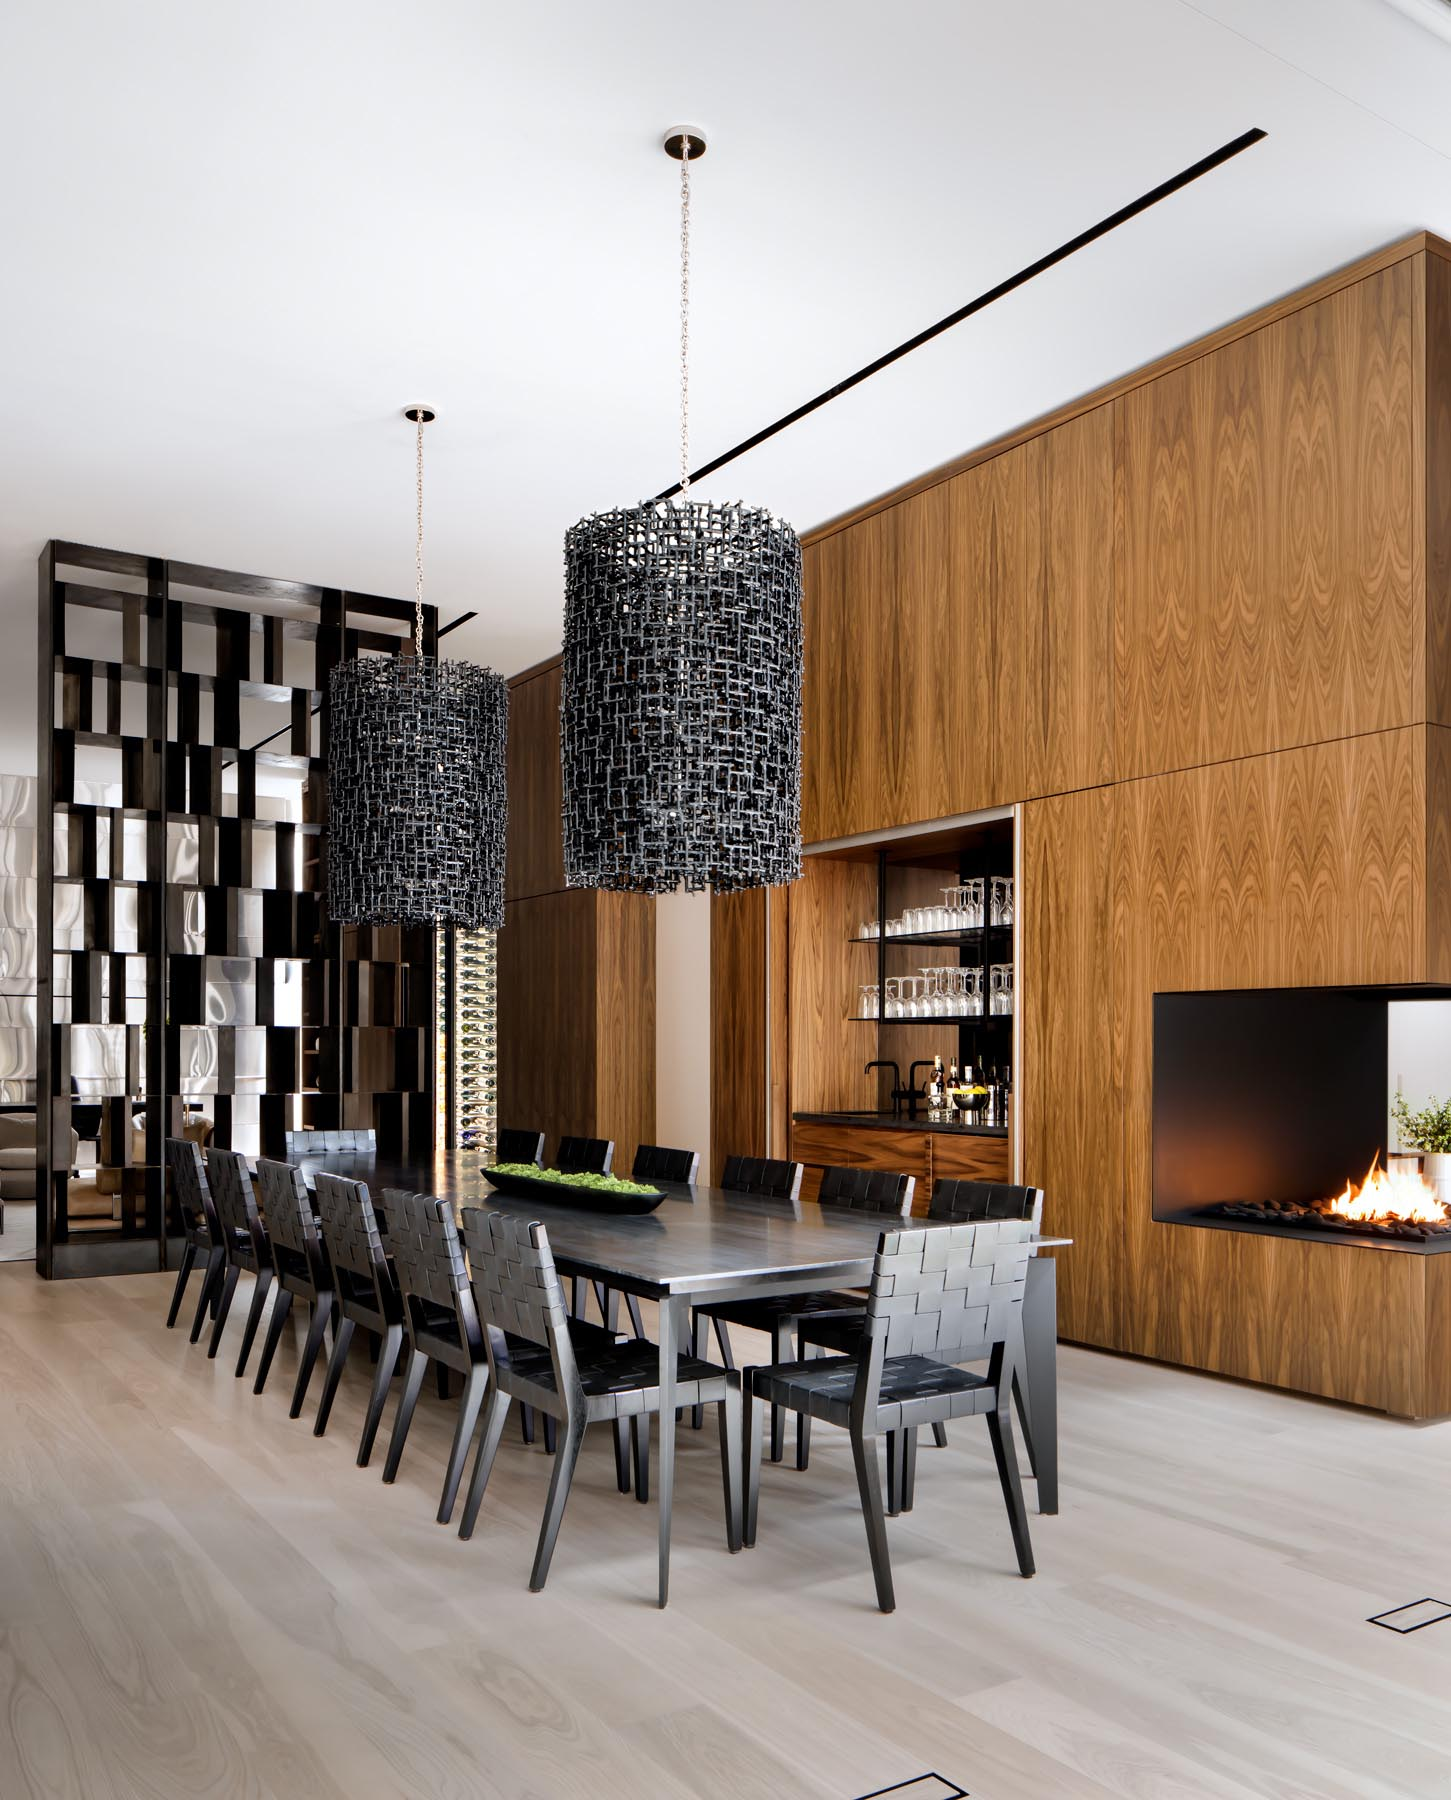 A large shelving unit separates the dining room from the Scotch lounge, while a set of bi-fold doors open to reveal a wet bar.